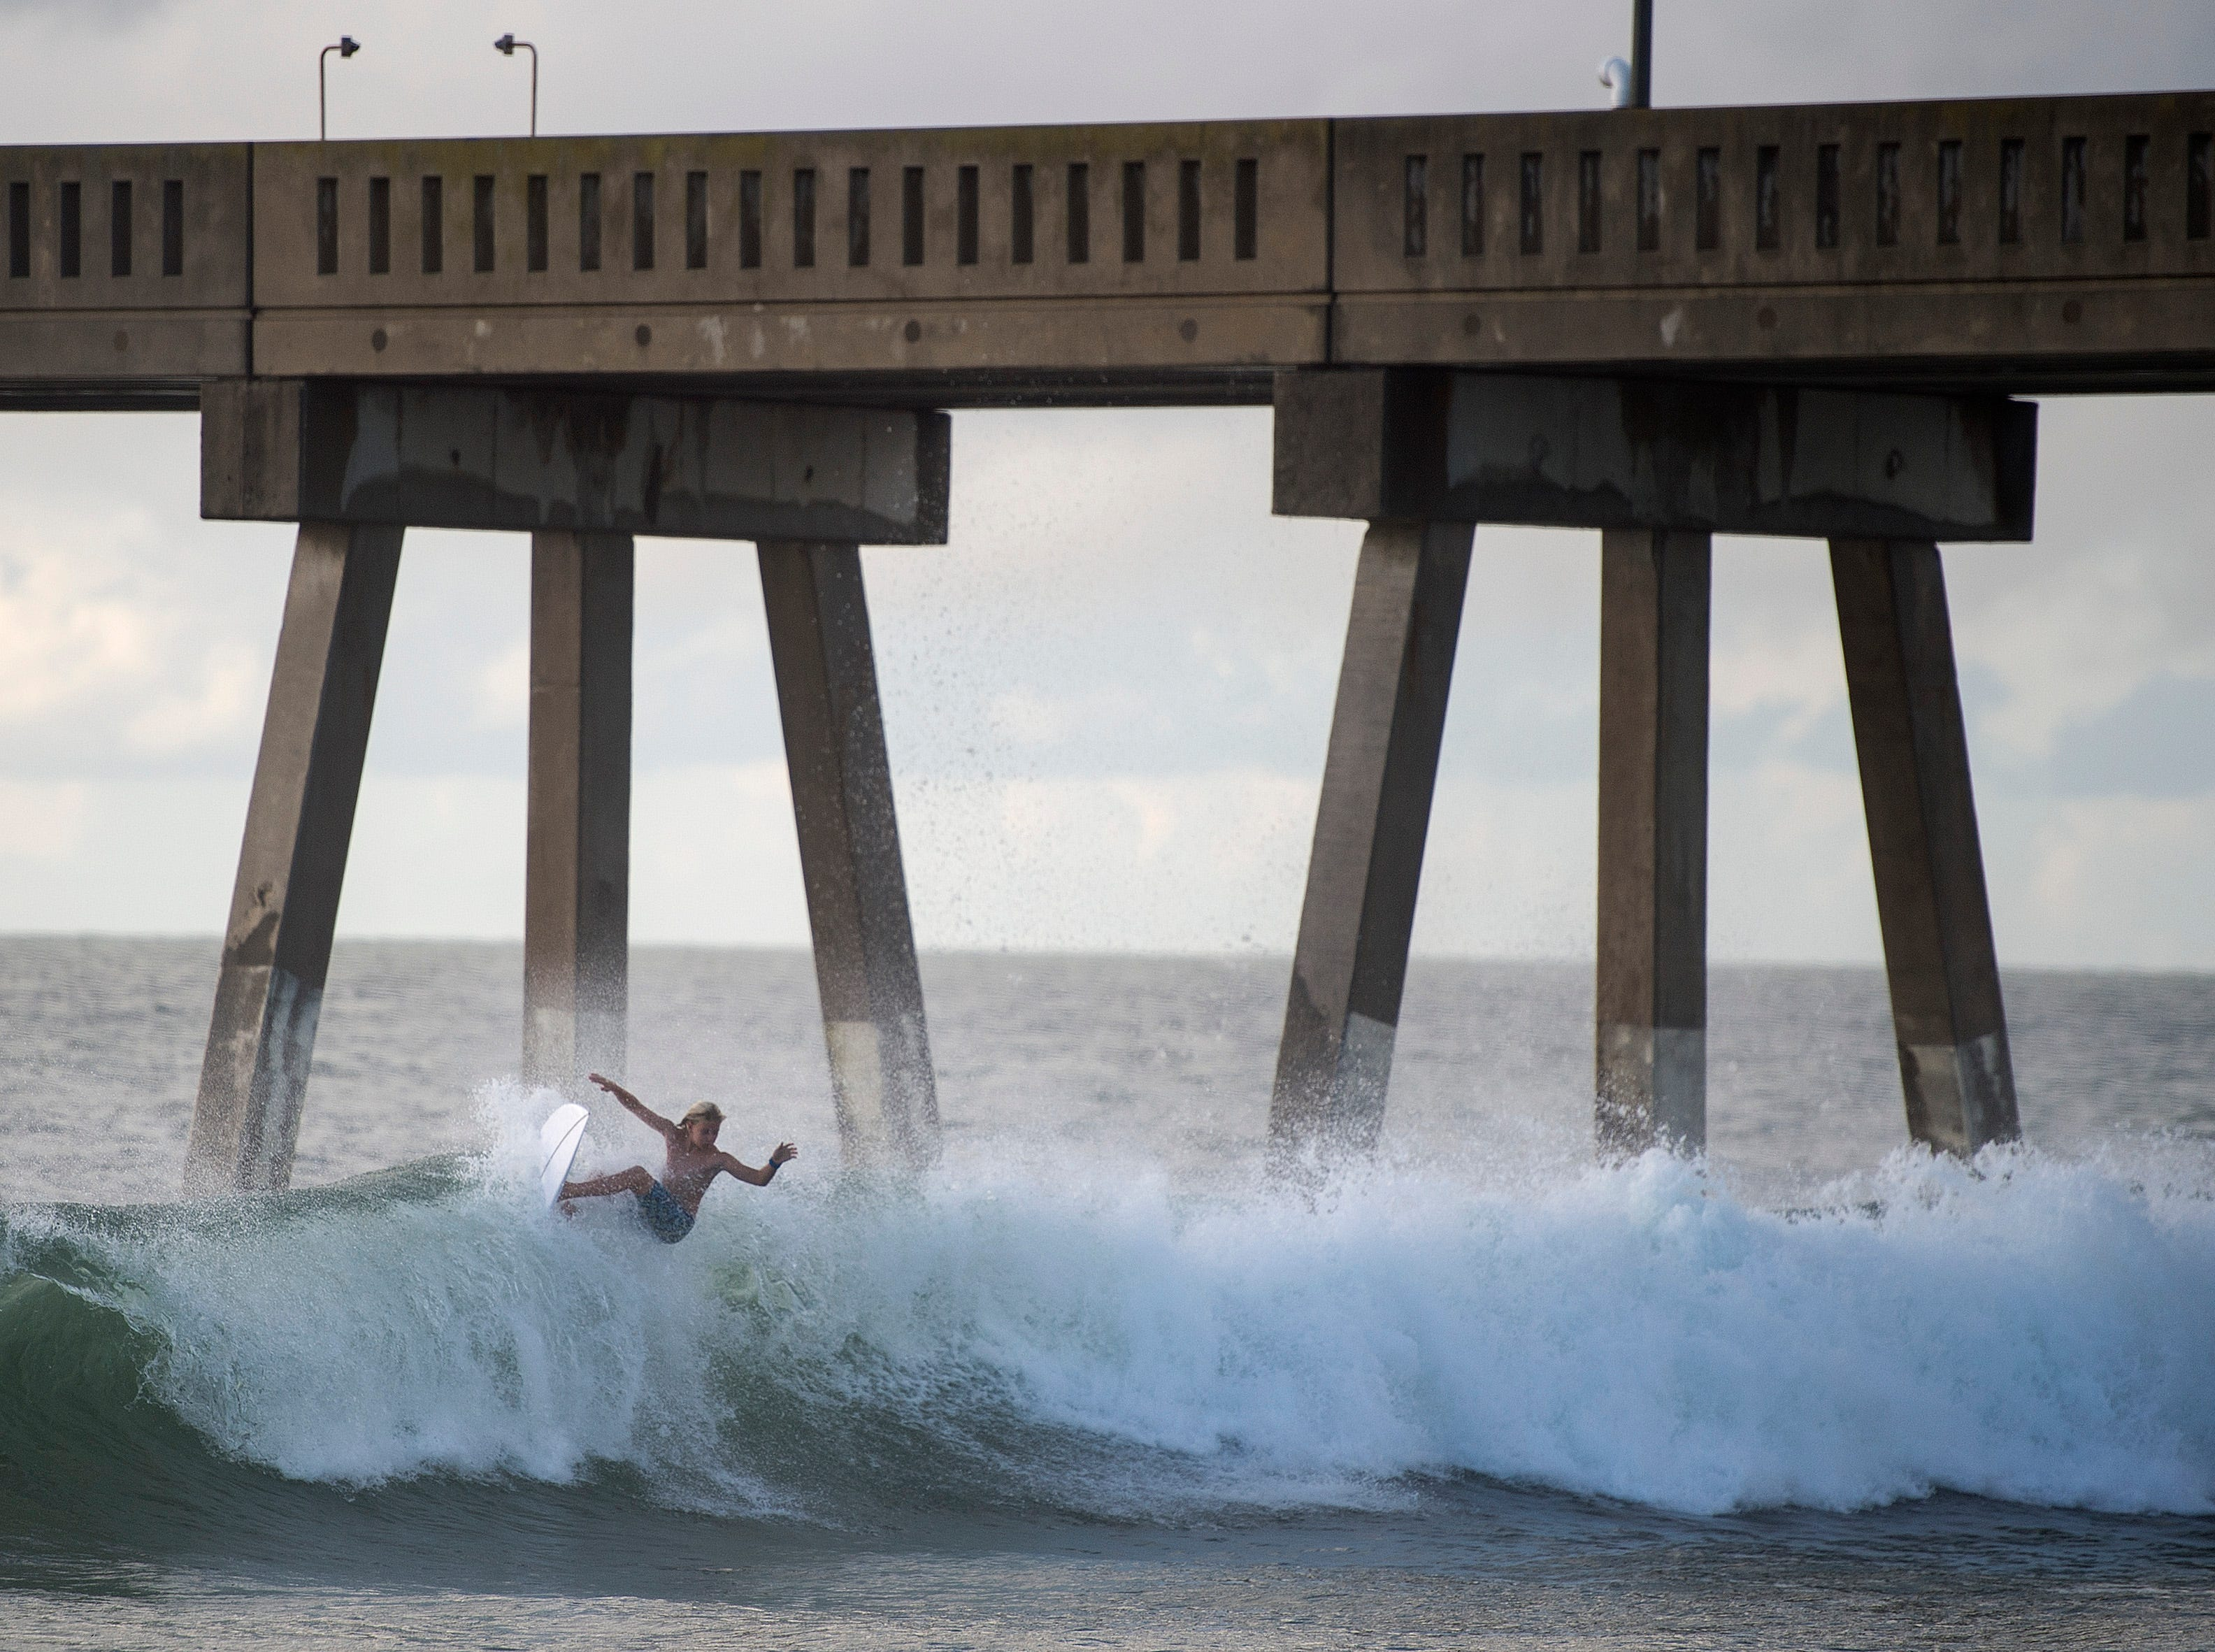 A surfer catches a wave a day before the arrival of Hurricane Florence at Wrightsville Beach, North Carolina on September 12, 2018.